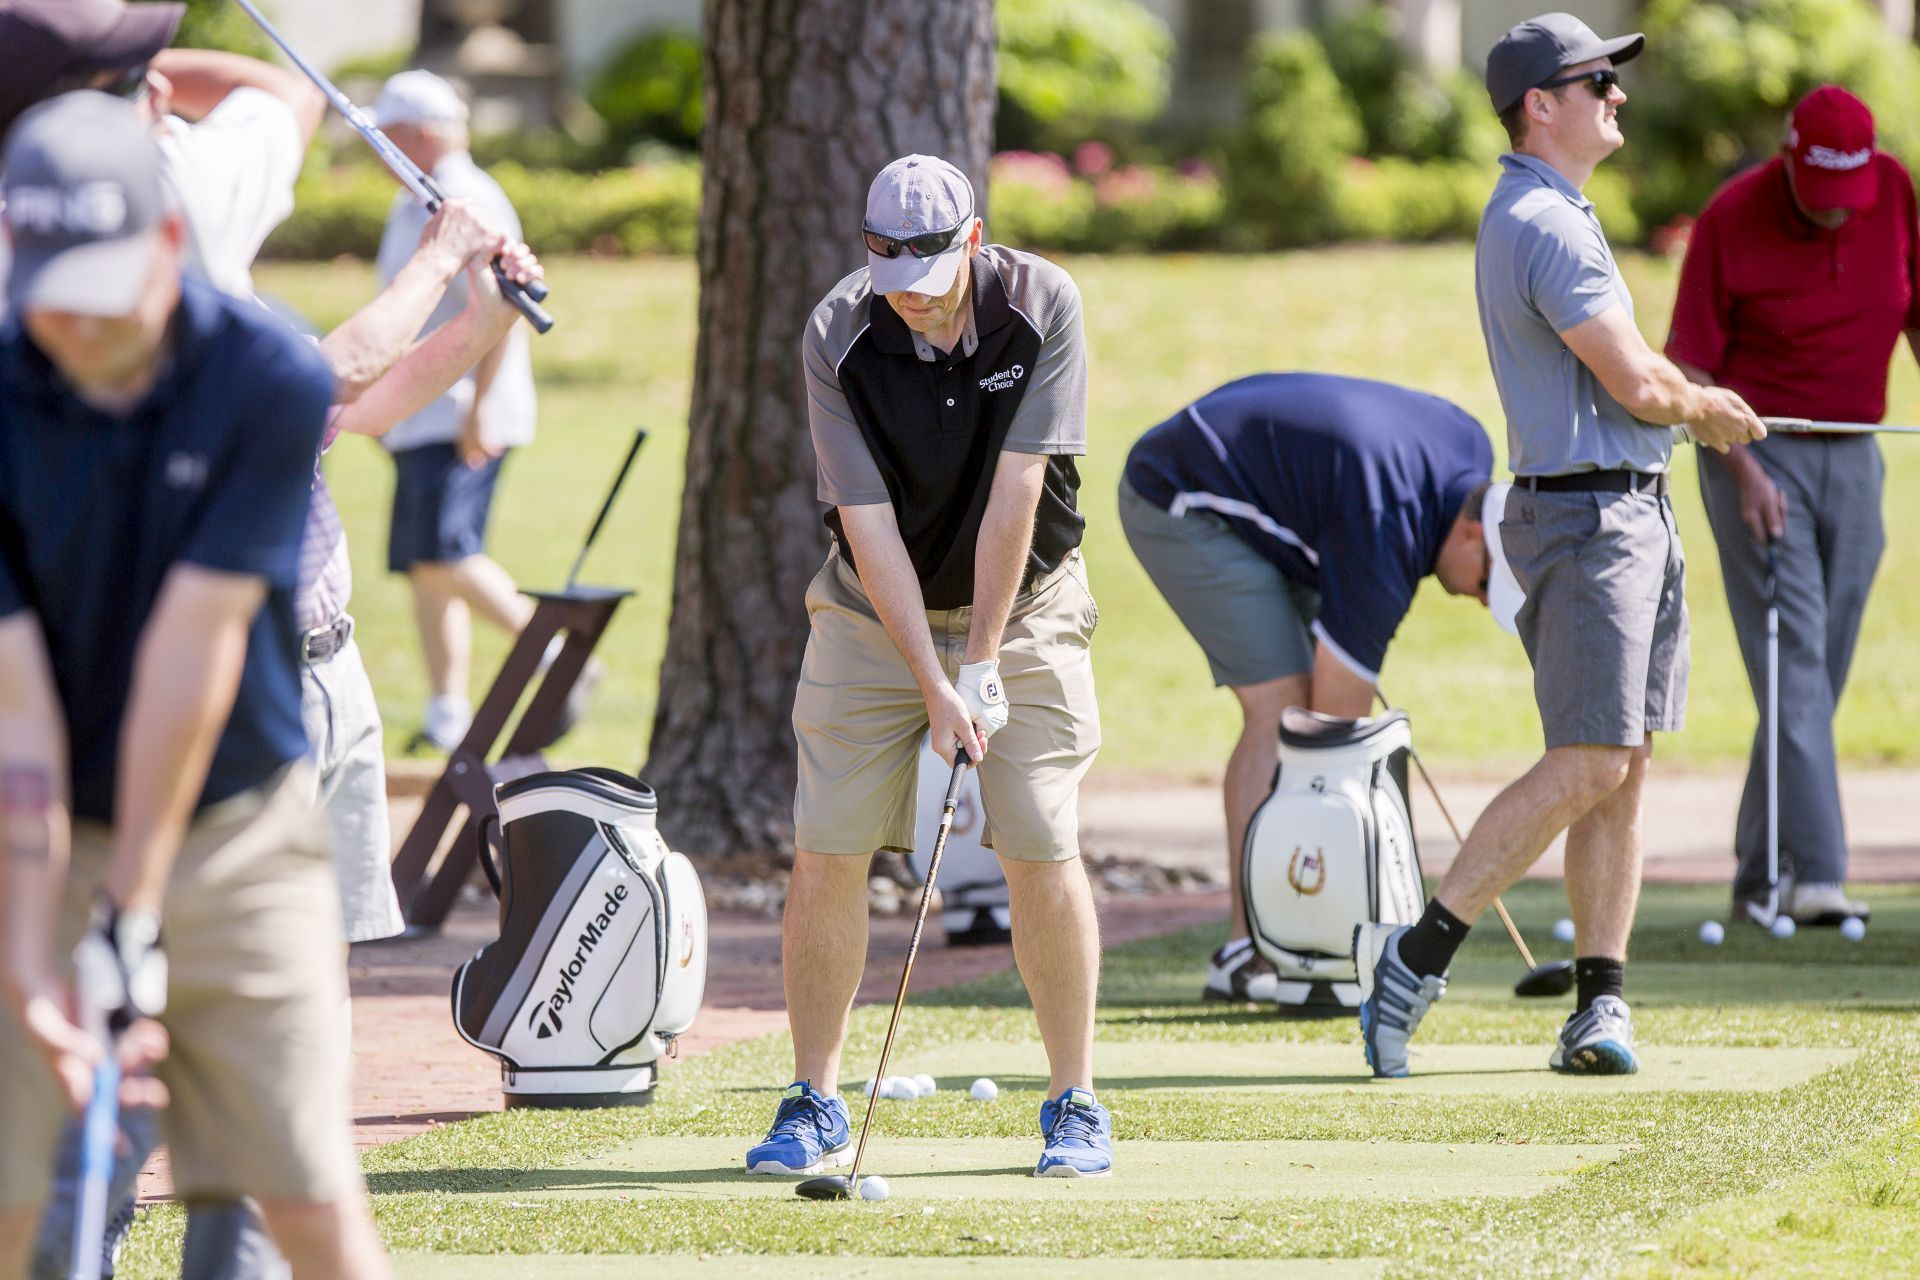 Langley for Families Charity Golf Classic gallery image #4